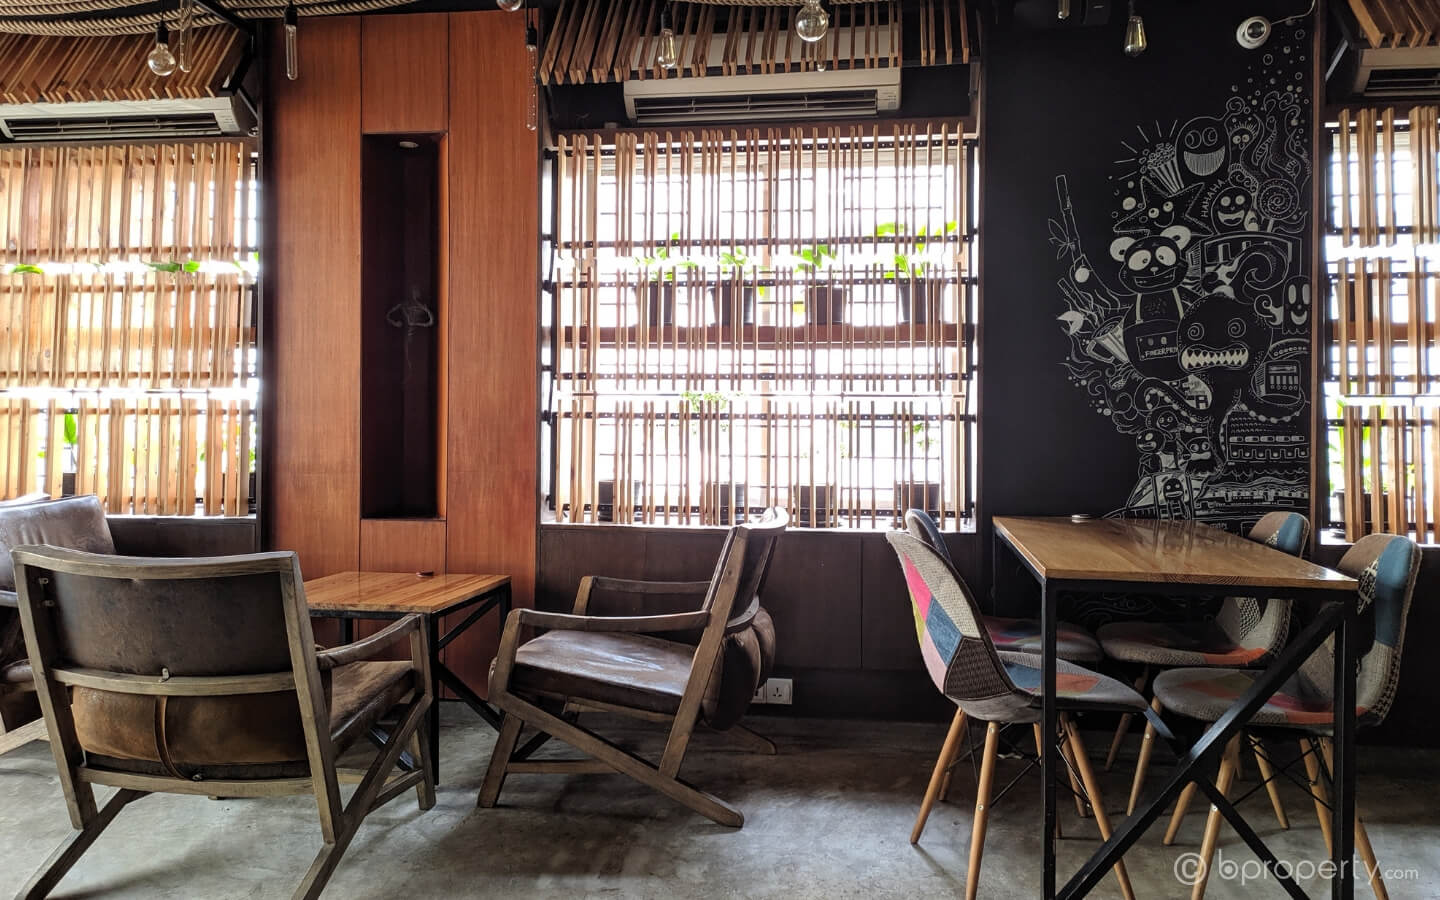 Interior of Cafe Memoir - places for introverts